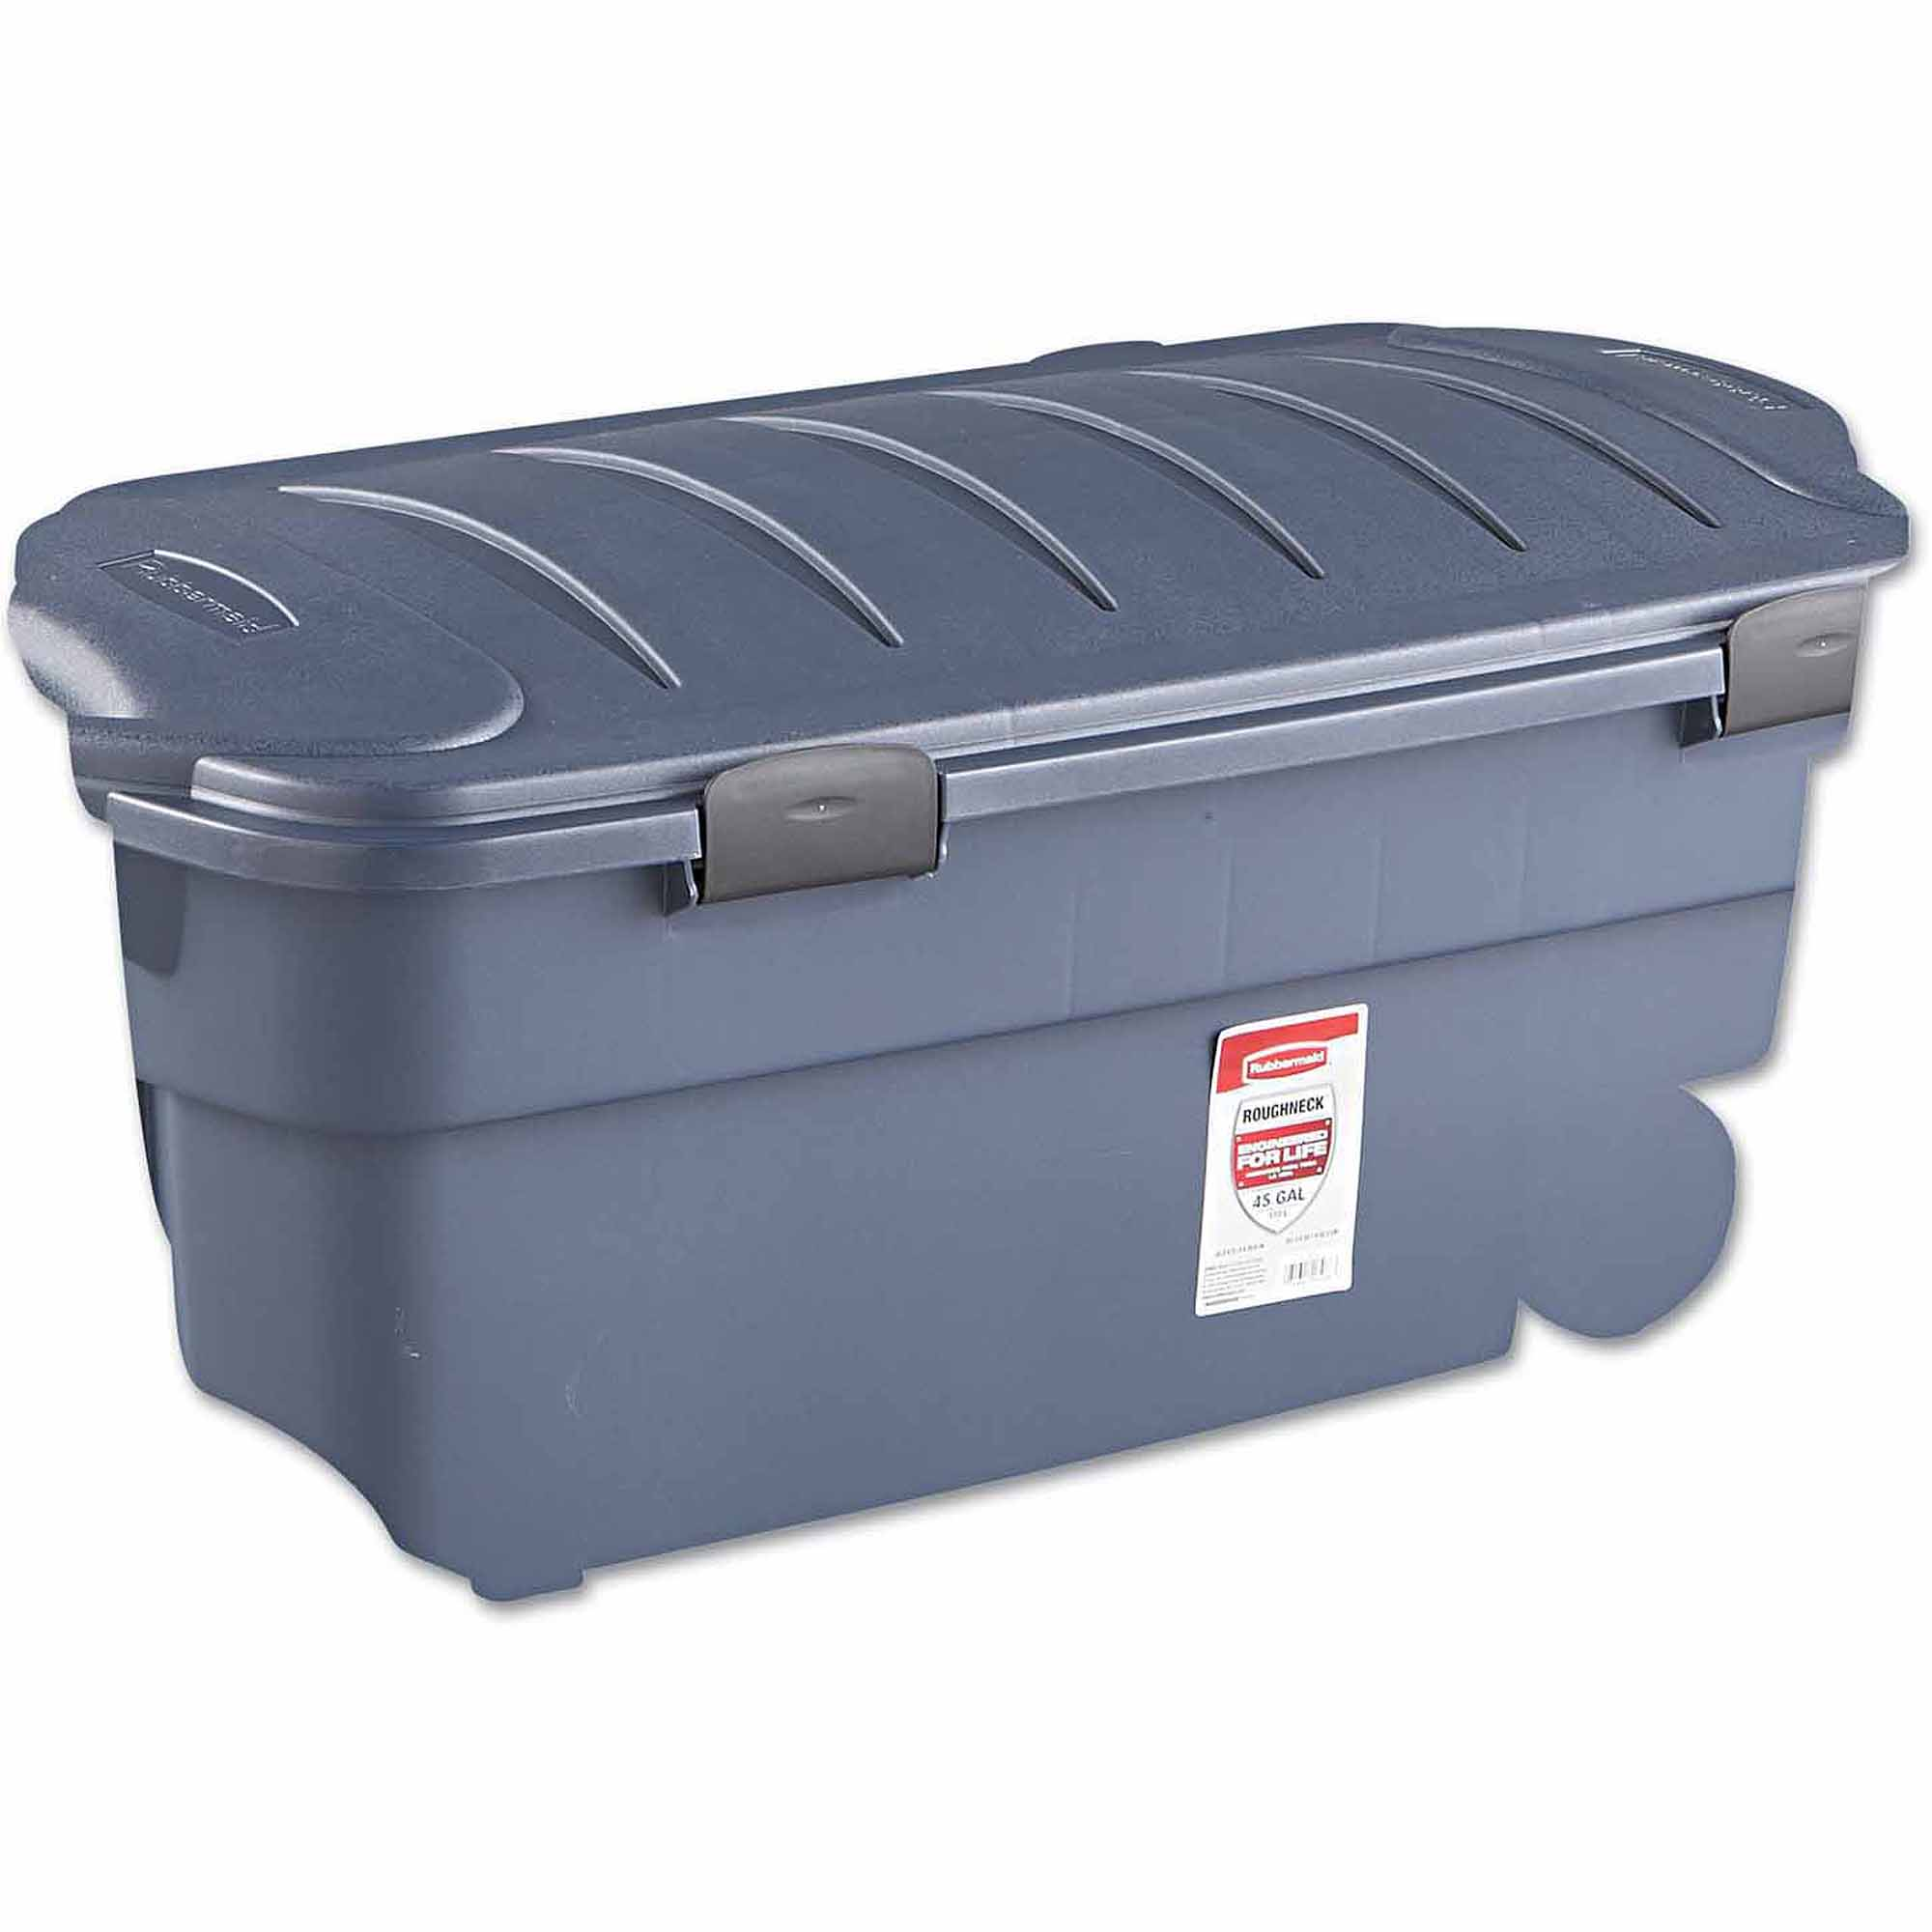 Rubbermaid Roughneck Wheeled Storage Box, 45gal, Dark Indigo Metallic